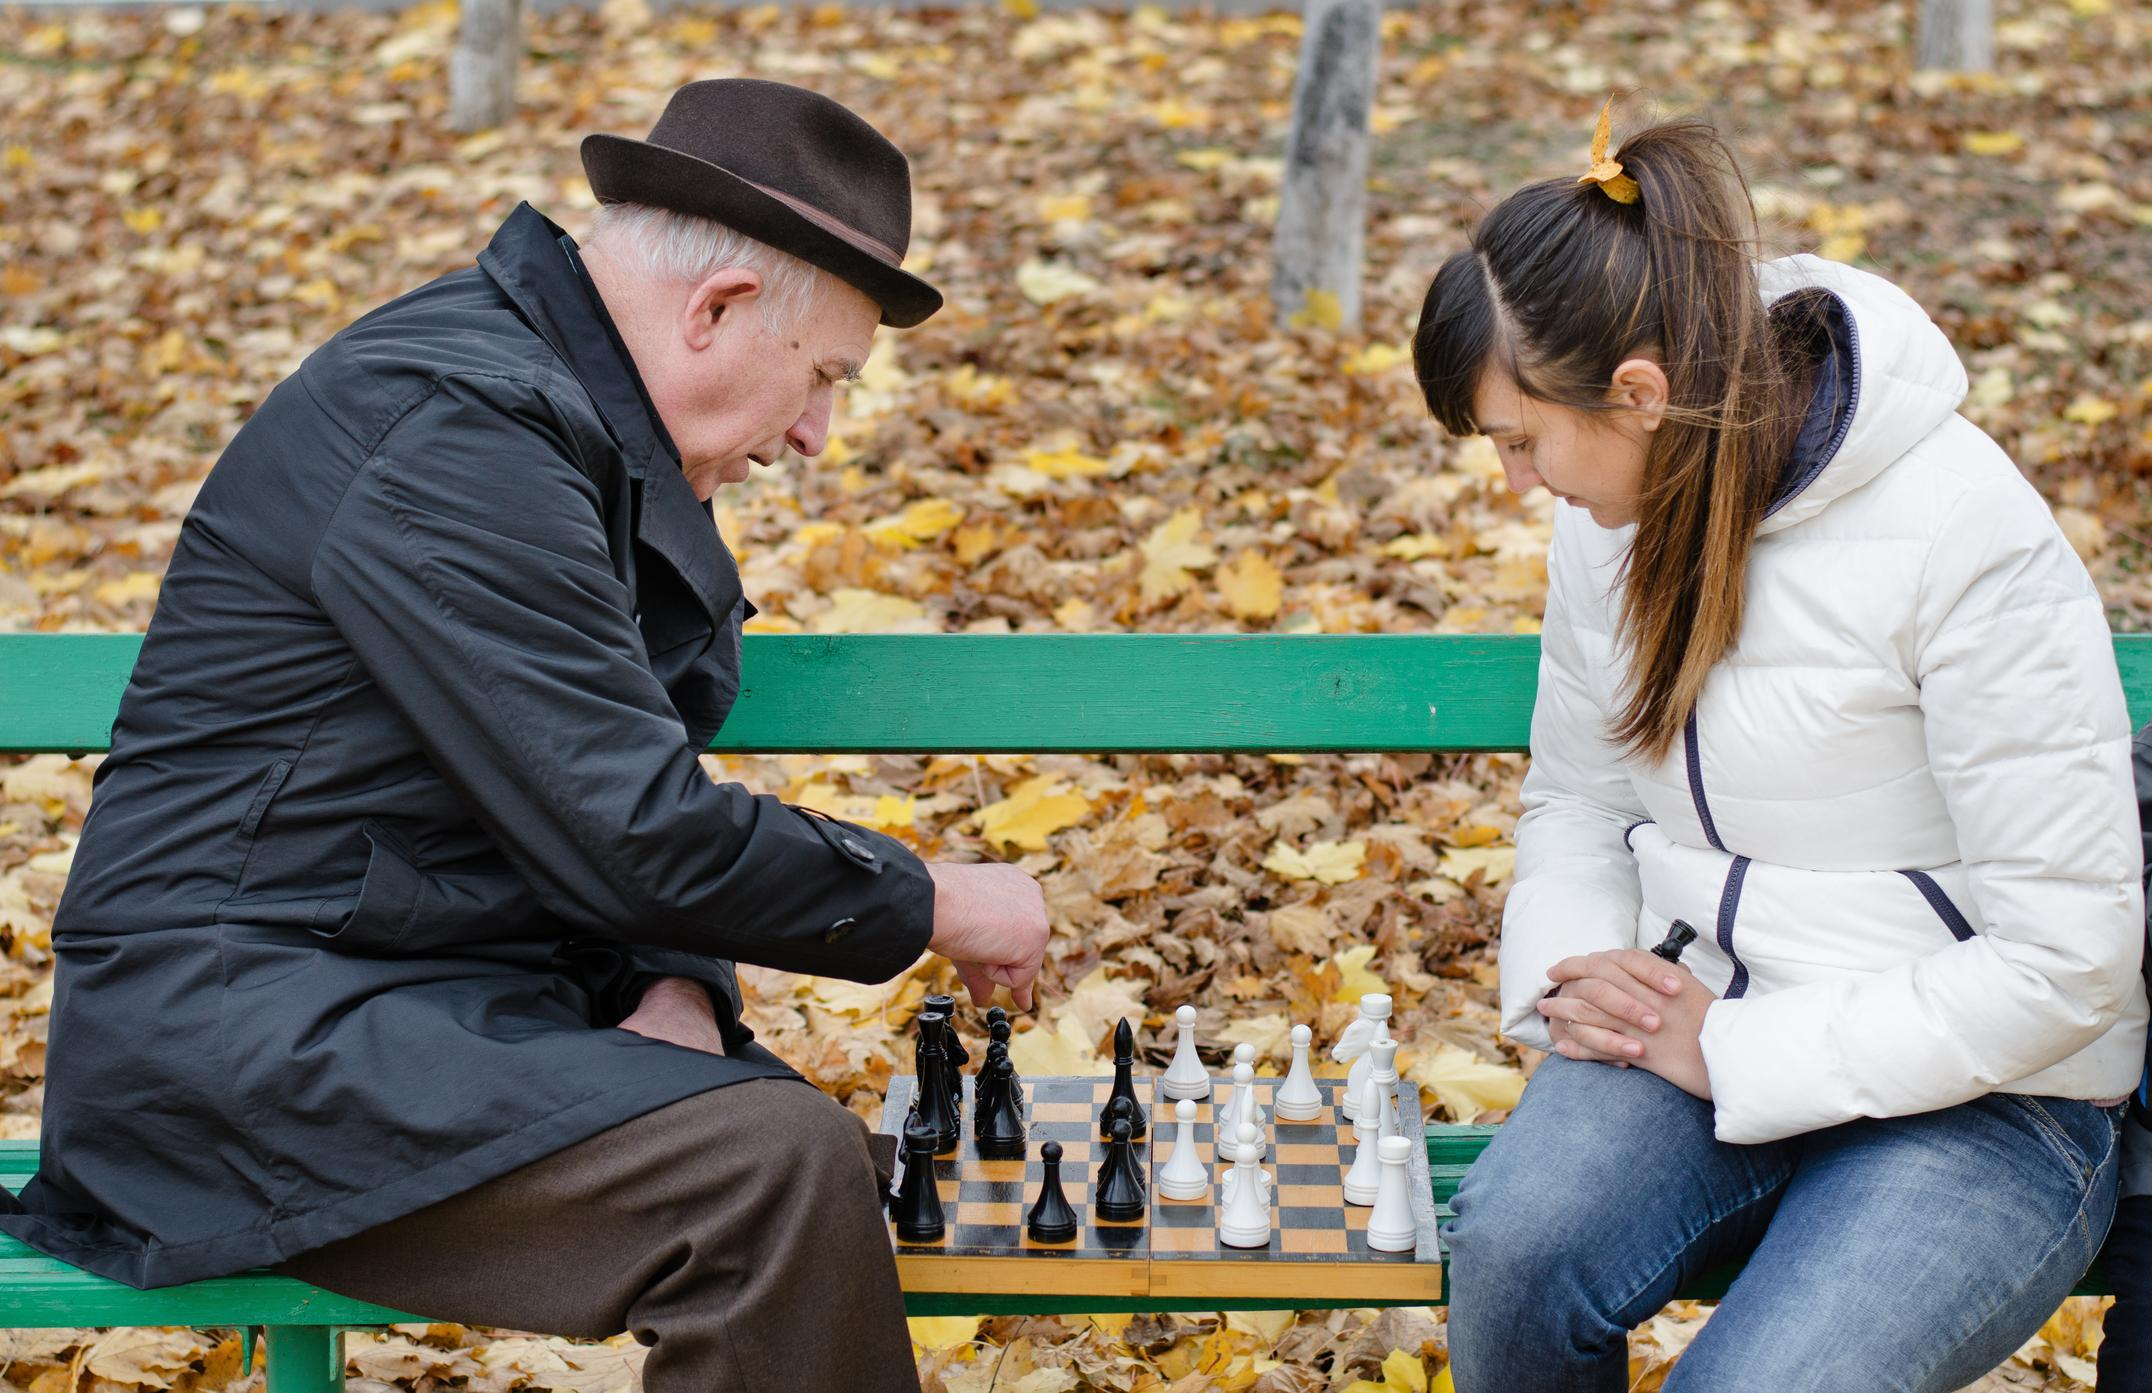 Elderly gentleman playing checkers with young woman